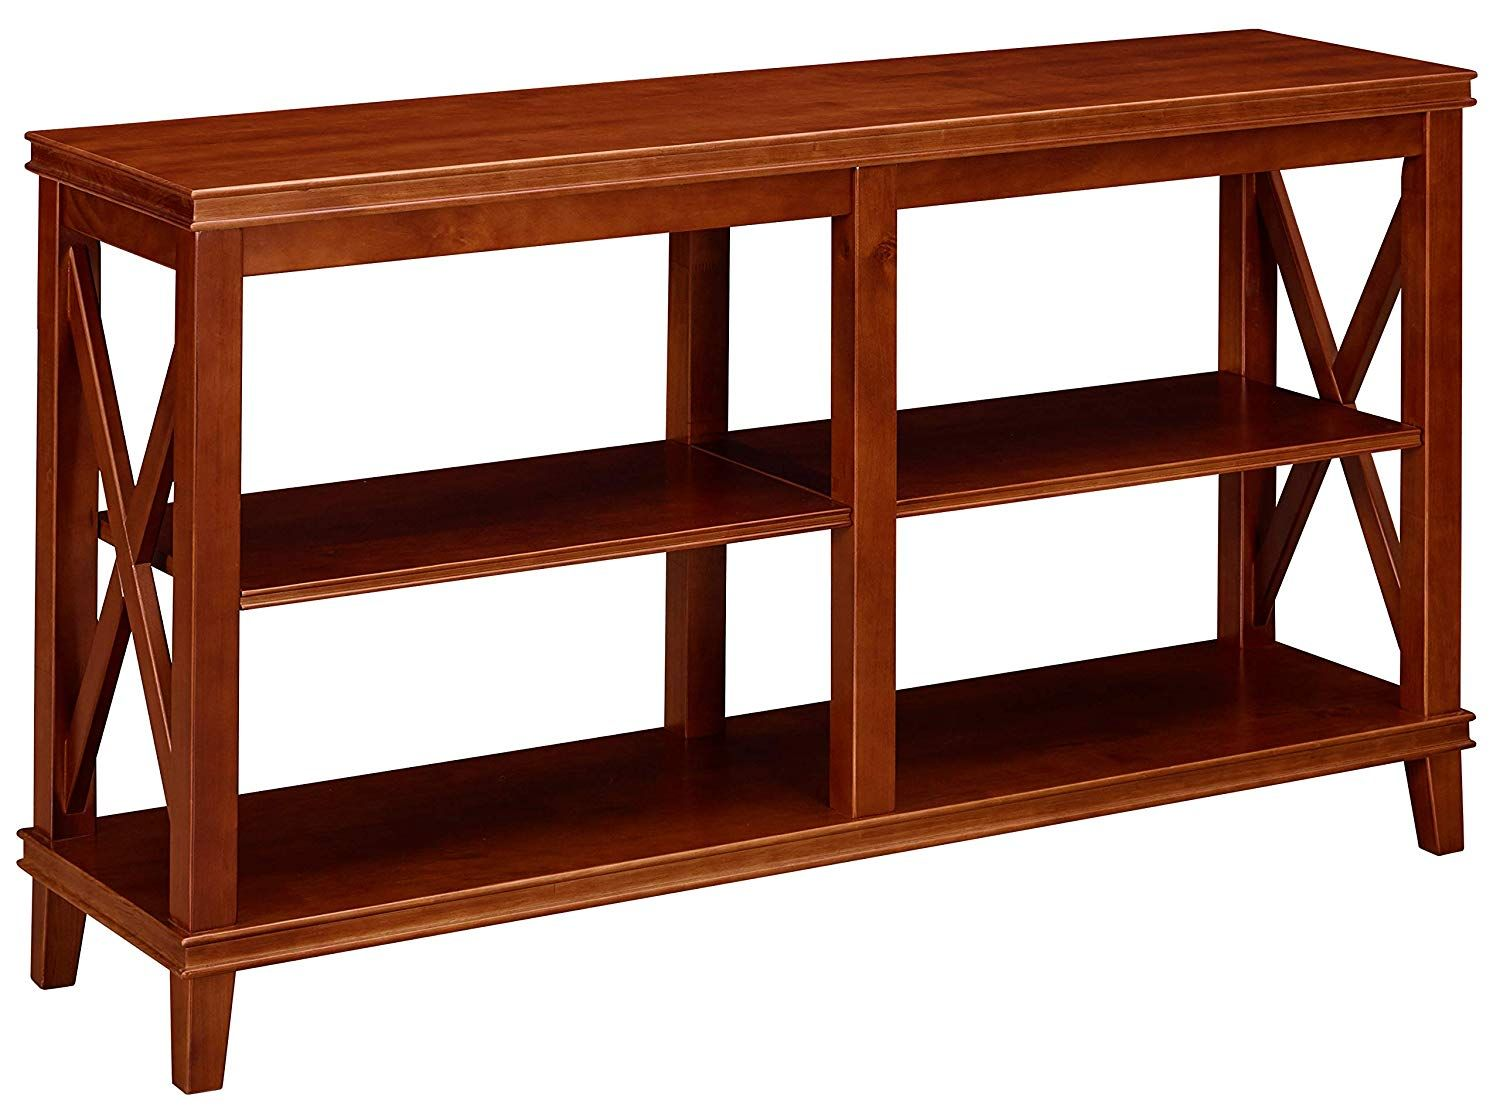 ravenna home wheeler shelf wood storage console table turned leg accent threshold dark cherry small nautical lamp shades outdoor drum rowico furniture cordless bedside lights